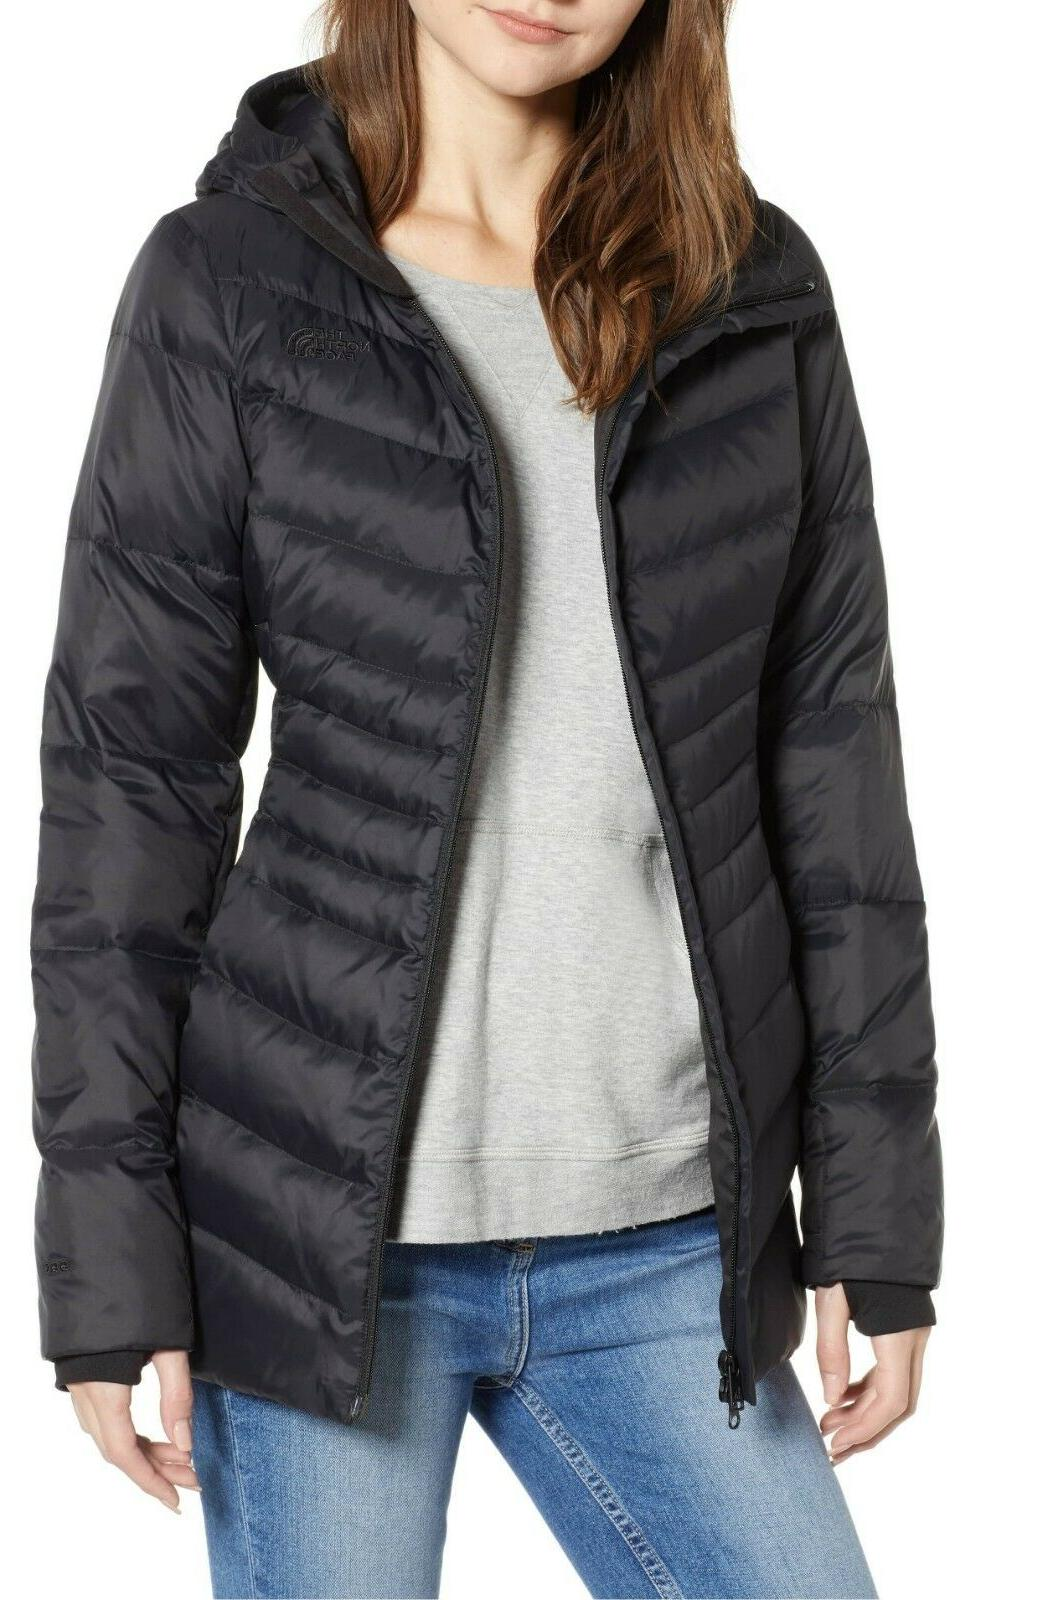 The NORTH FACE Black Aconcagua II 550 Fill Power Down Parka